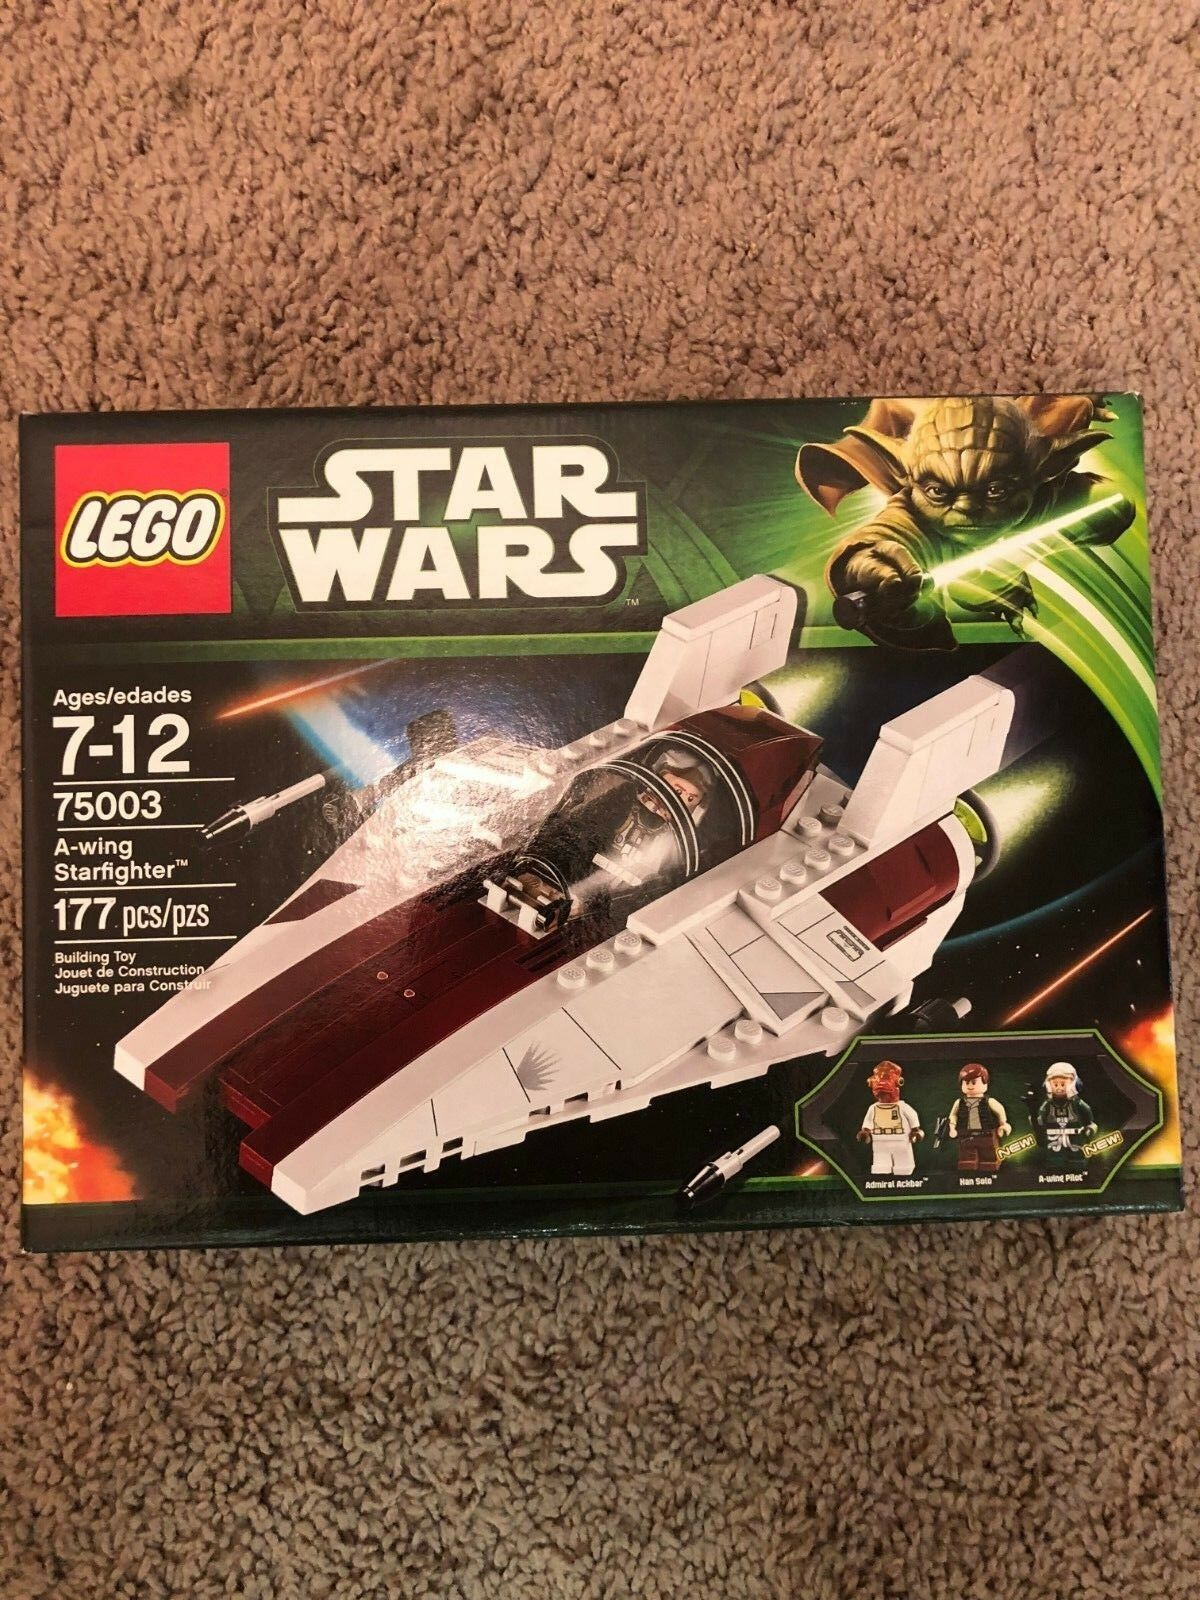 LEGO Star Wars 75003 - A-wing Starfighter - Retirosso, Nuovo in Sealed Box